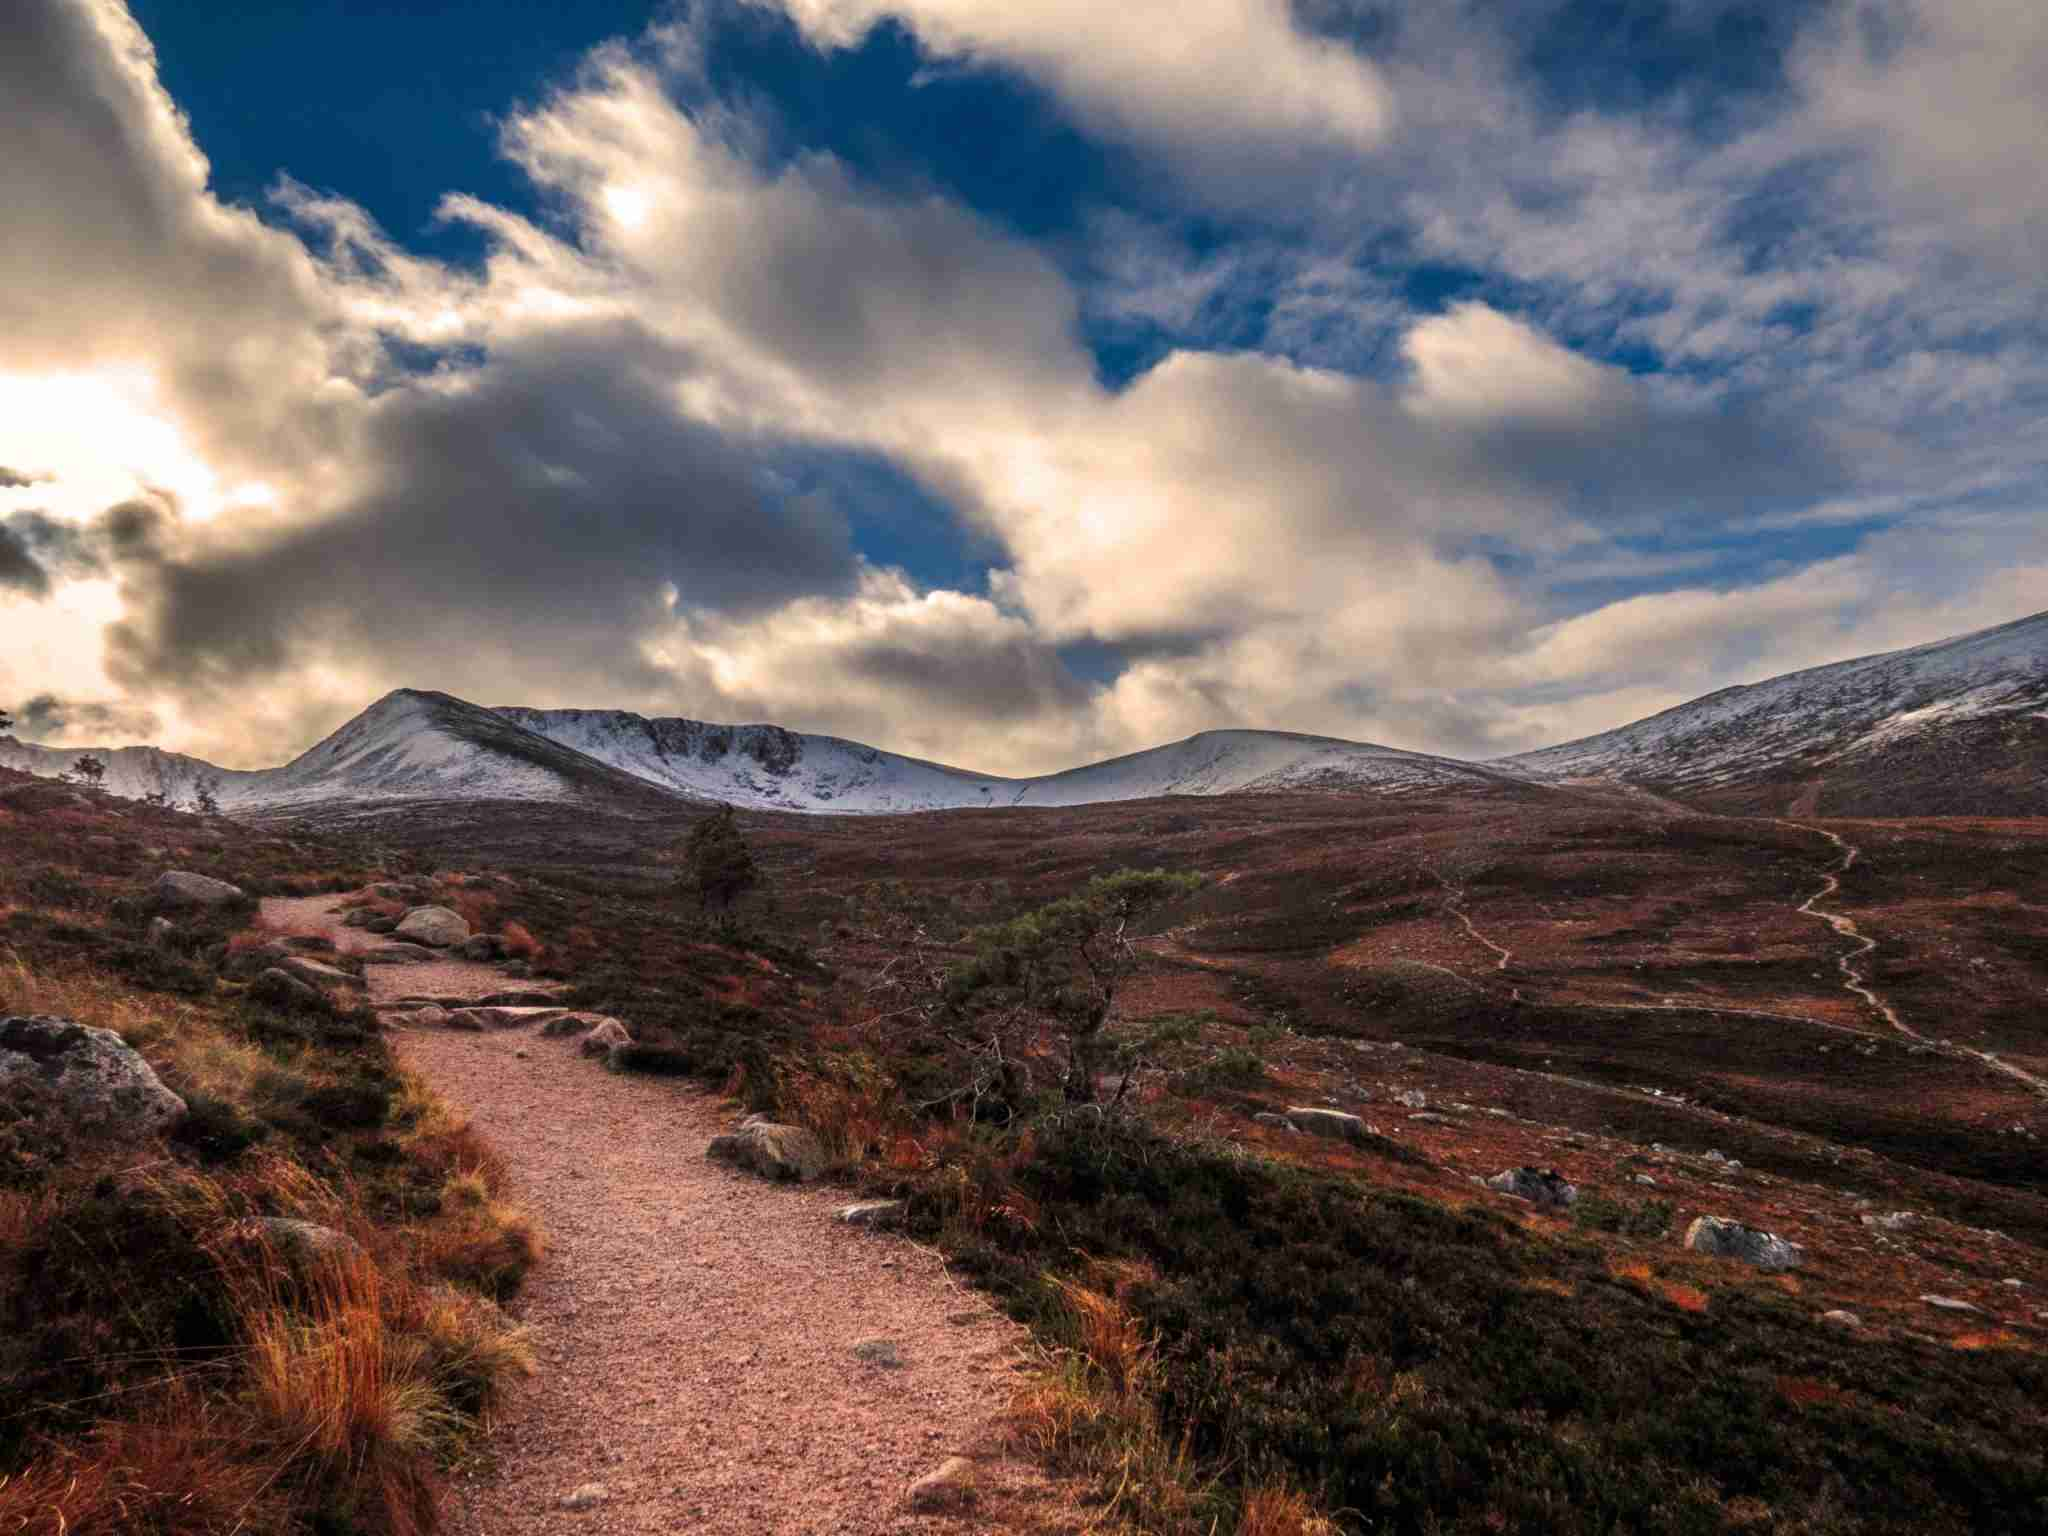 Views across the Cairngorms National Park. (Photo by VWB photos/Getty Images)